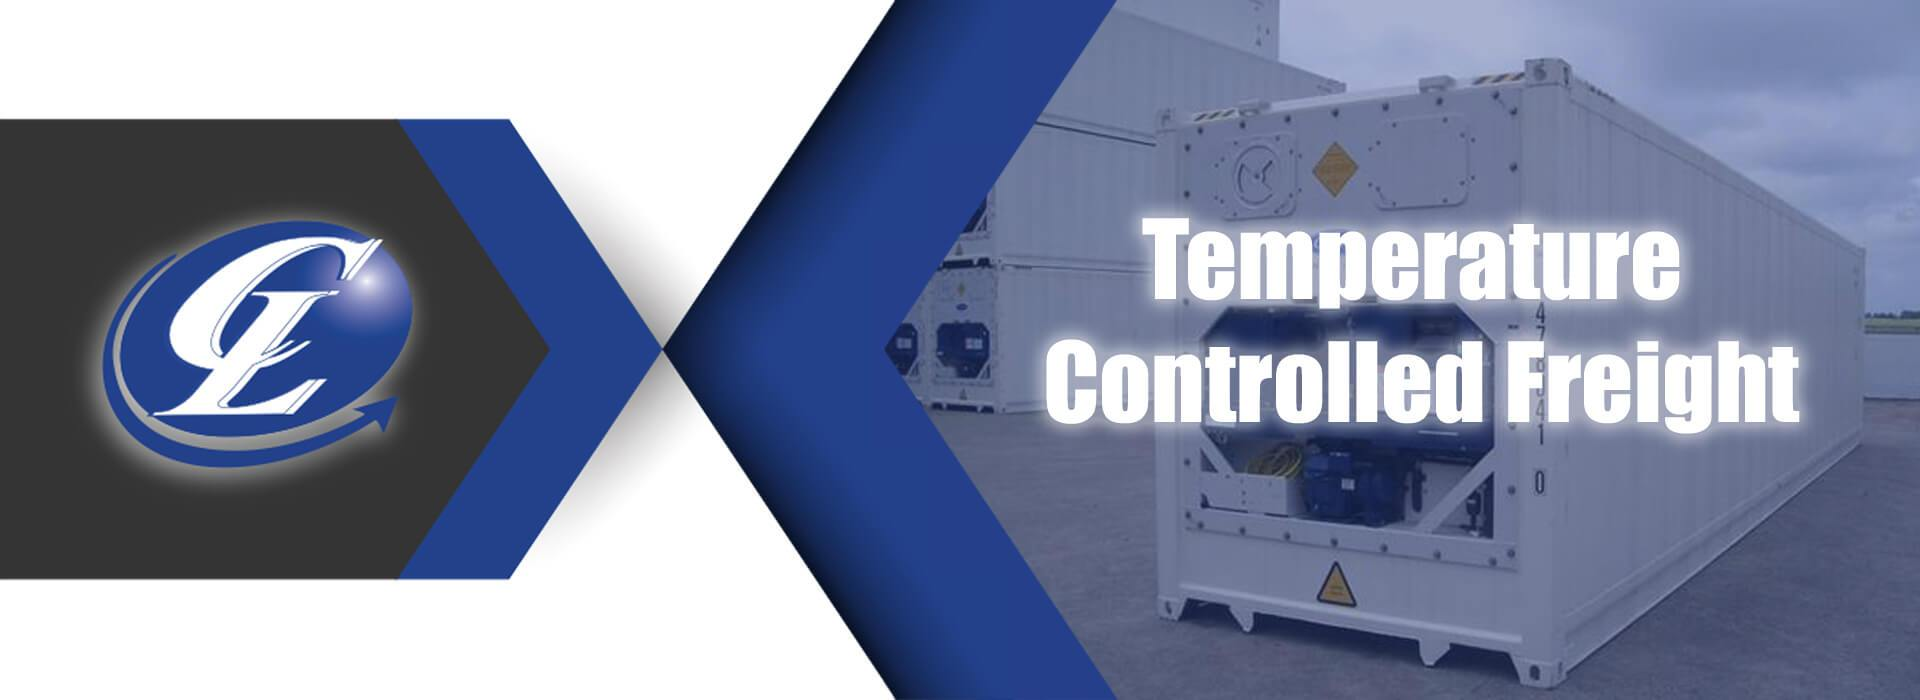 Temperature controlled freight container